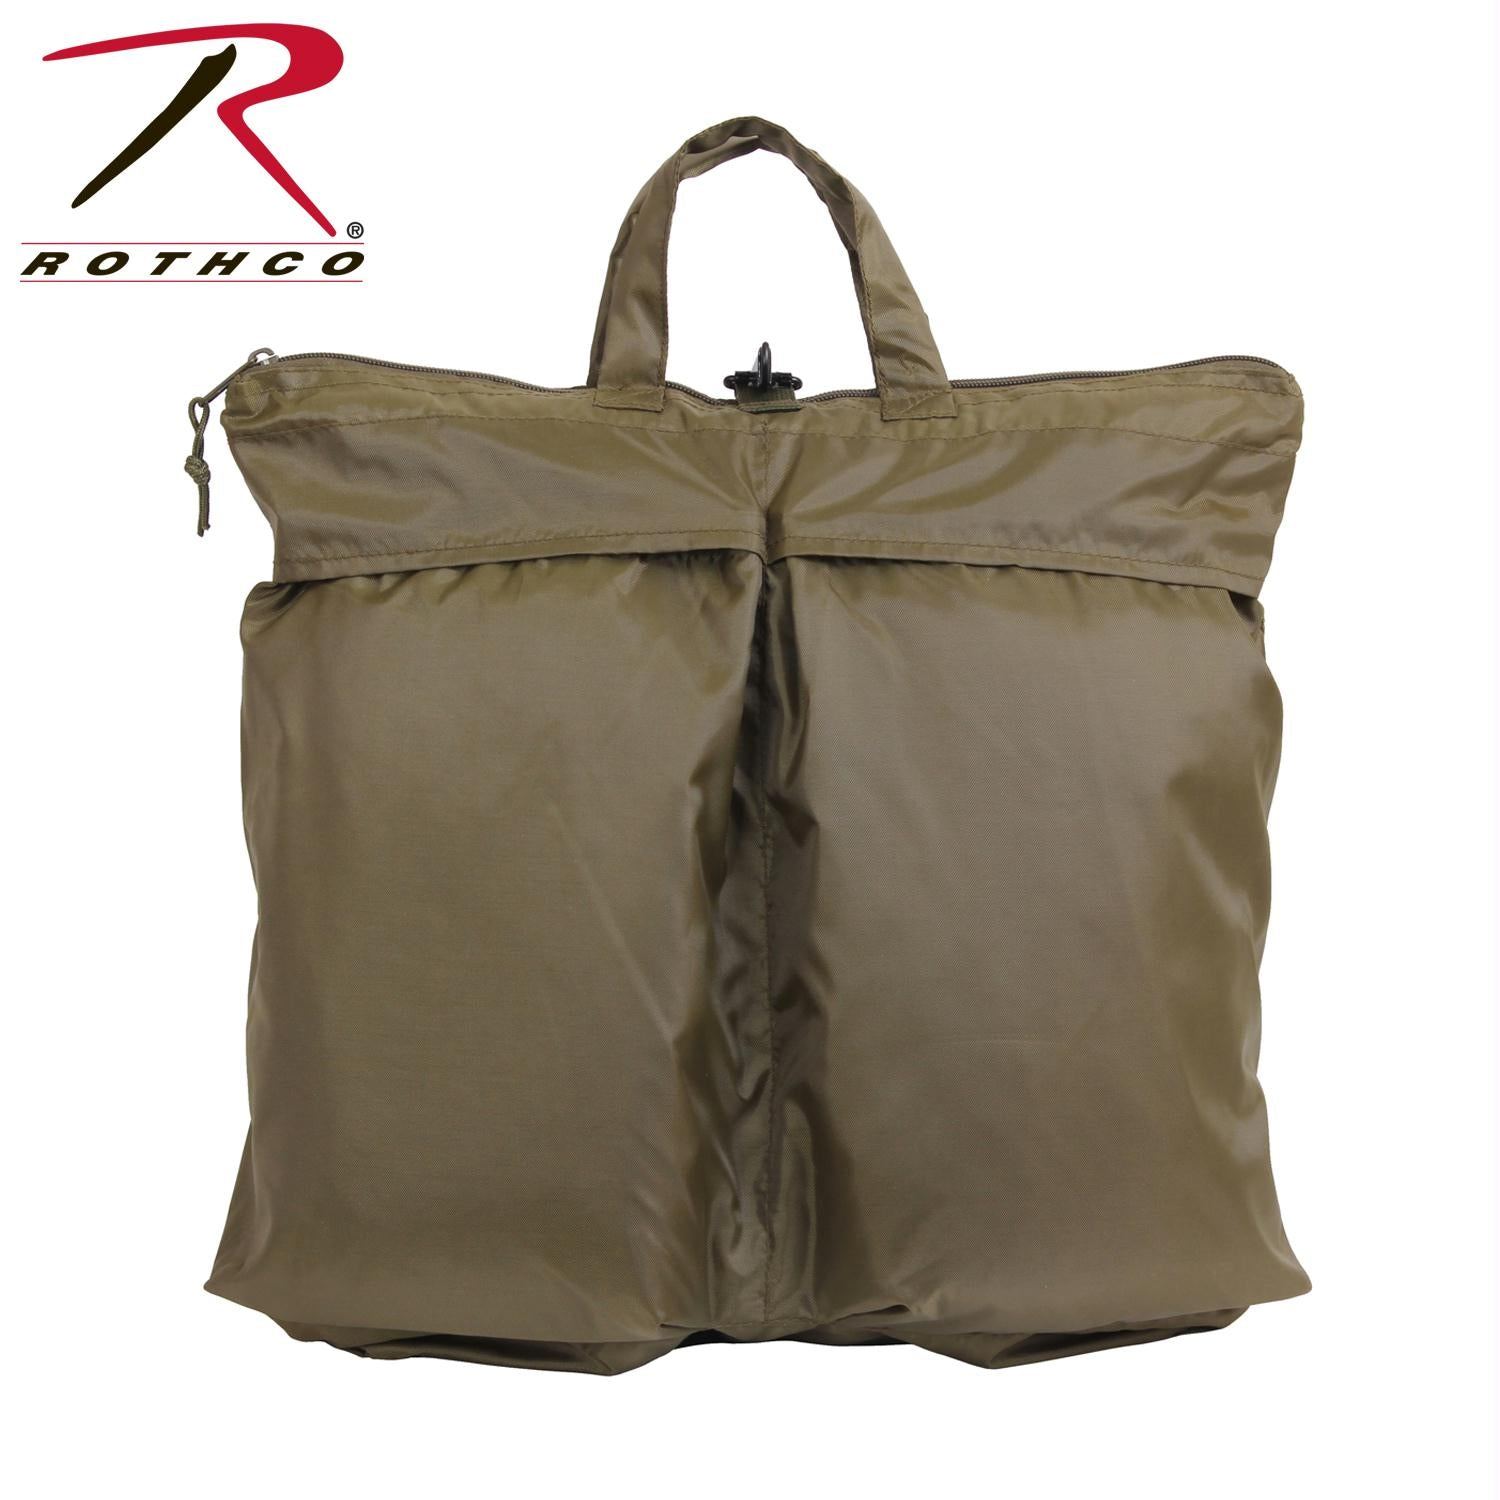 Rothco G.I. Type Flyers Helmet Bags - Olive Drab